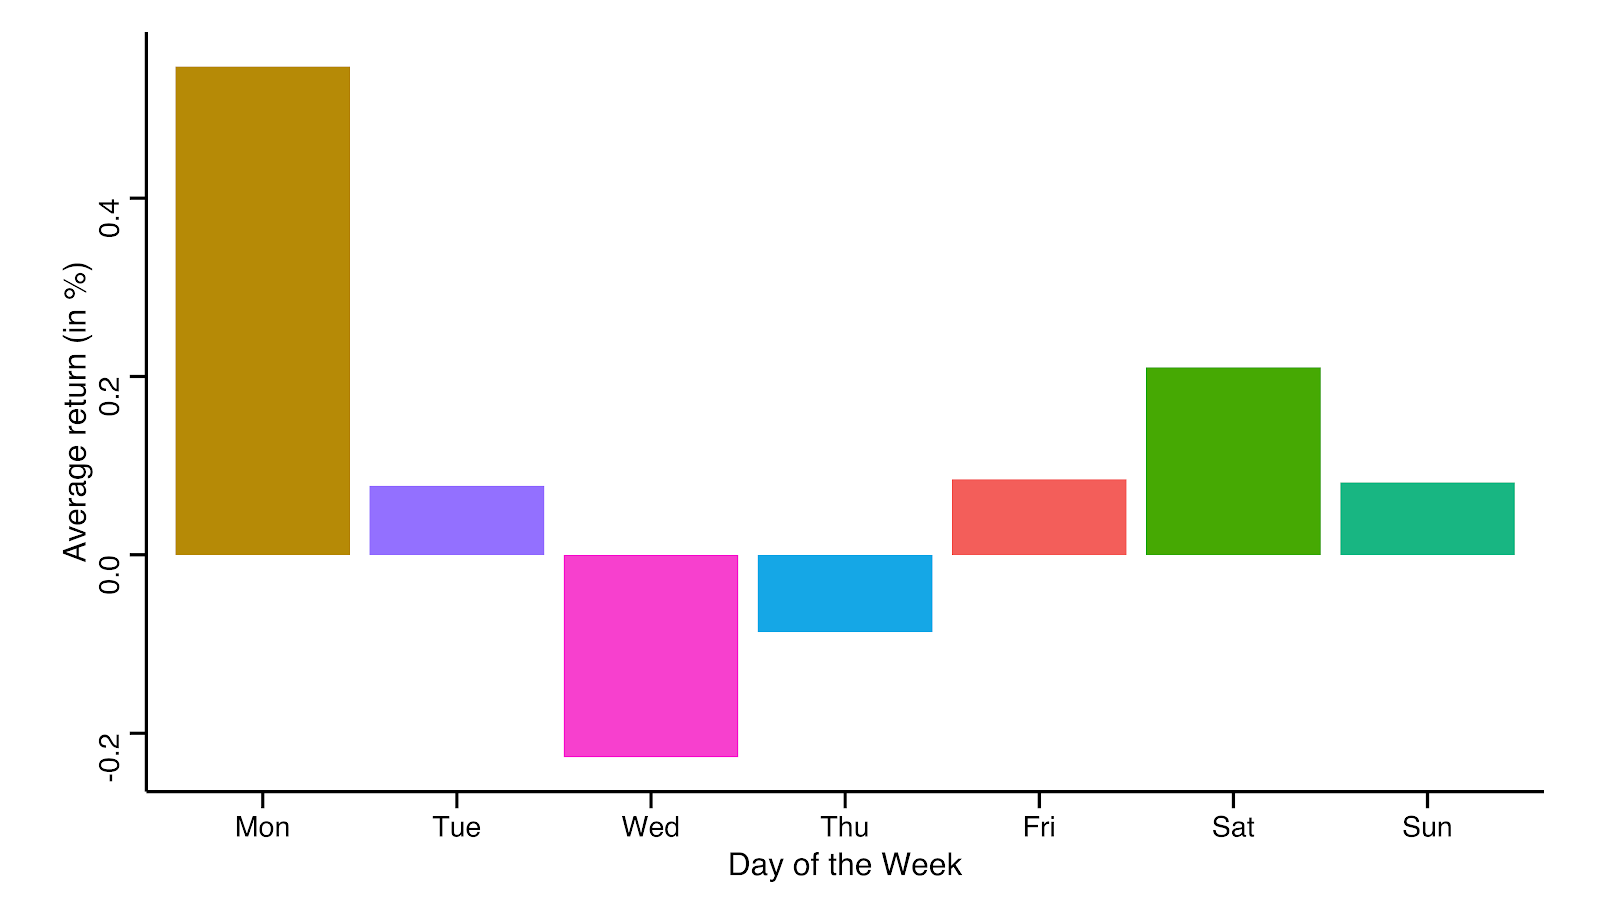 Average Daily Return for each Day of the Week between April 2013 and January 2020